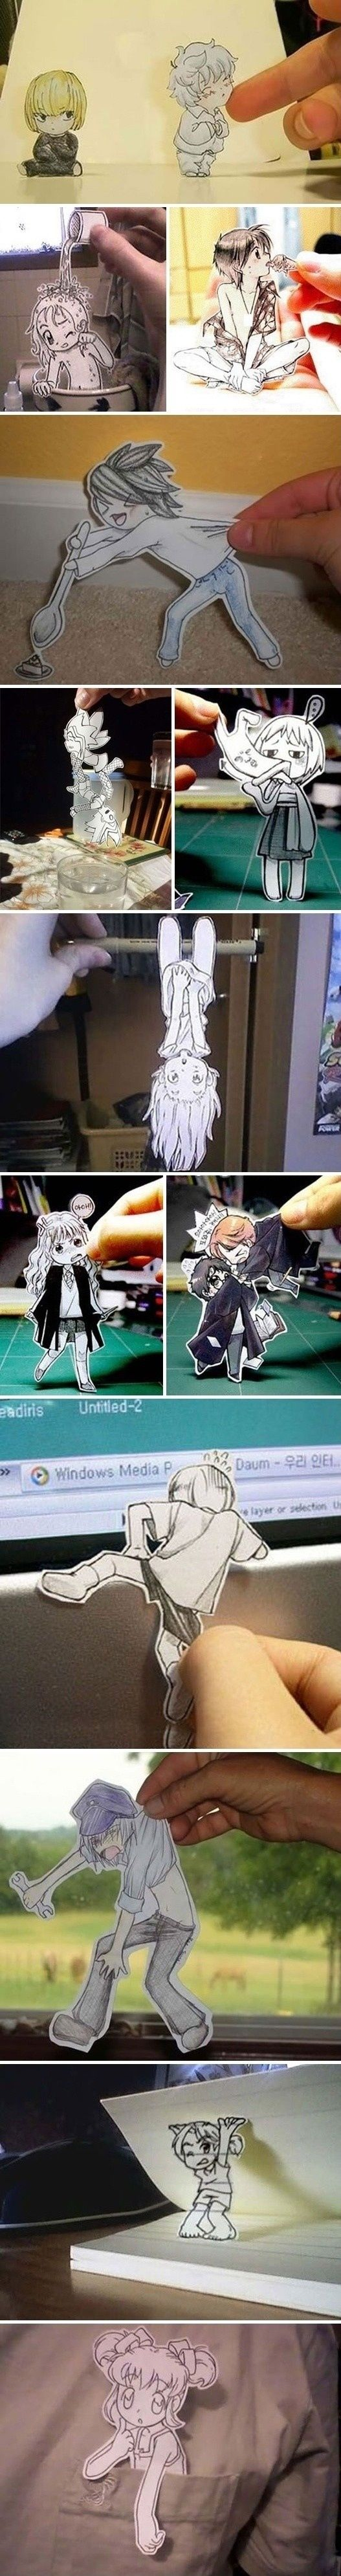 Anime cutouts, I wanna to thing. Need to work on my art skills.... http://xn--80aapkabjcvfd4a0a.xn--p1acf/2017/01/23/anime-cutouts-i-wanna-to-thing-need-to-work-on-my-art-skills/  #animegirl  #animeeyes  #animeimpulse  #animech#ar#acters  #animeh#aven  #animew#all#aper  #animetv  #animemovies  #animef#avor  #anime#ames  #anime  #animememes  #animeexpo  #animedr#awings  #ani#art  #ani#av#at#arcr#ator  #ani#angel  #ani#ani#als  #ani#aw#ards  #ani#app  #ani#another  #ani#amino  #ani#aesthetic…